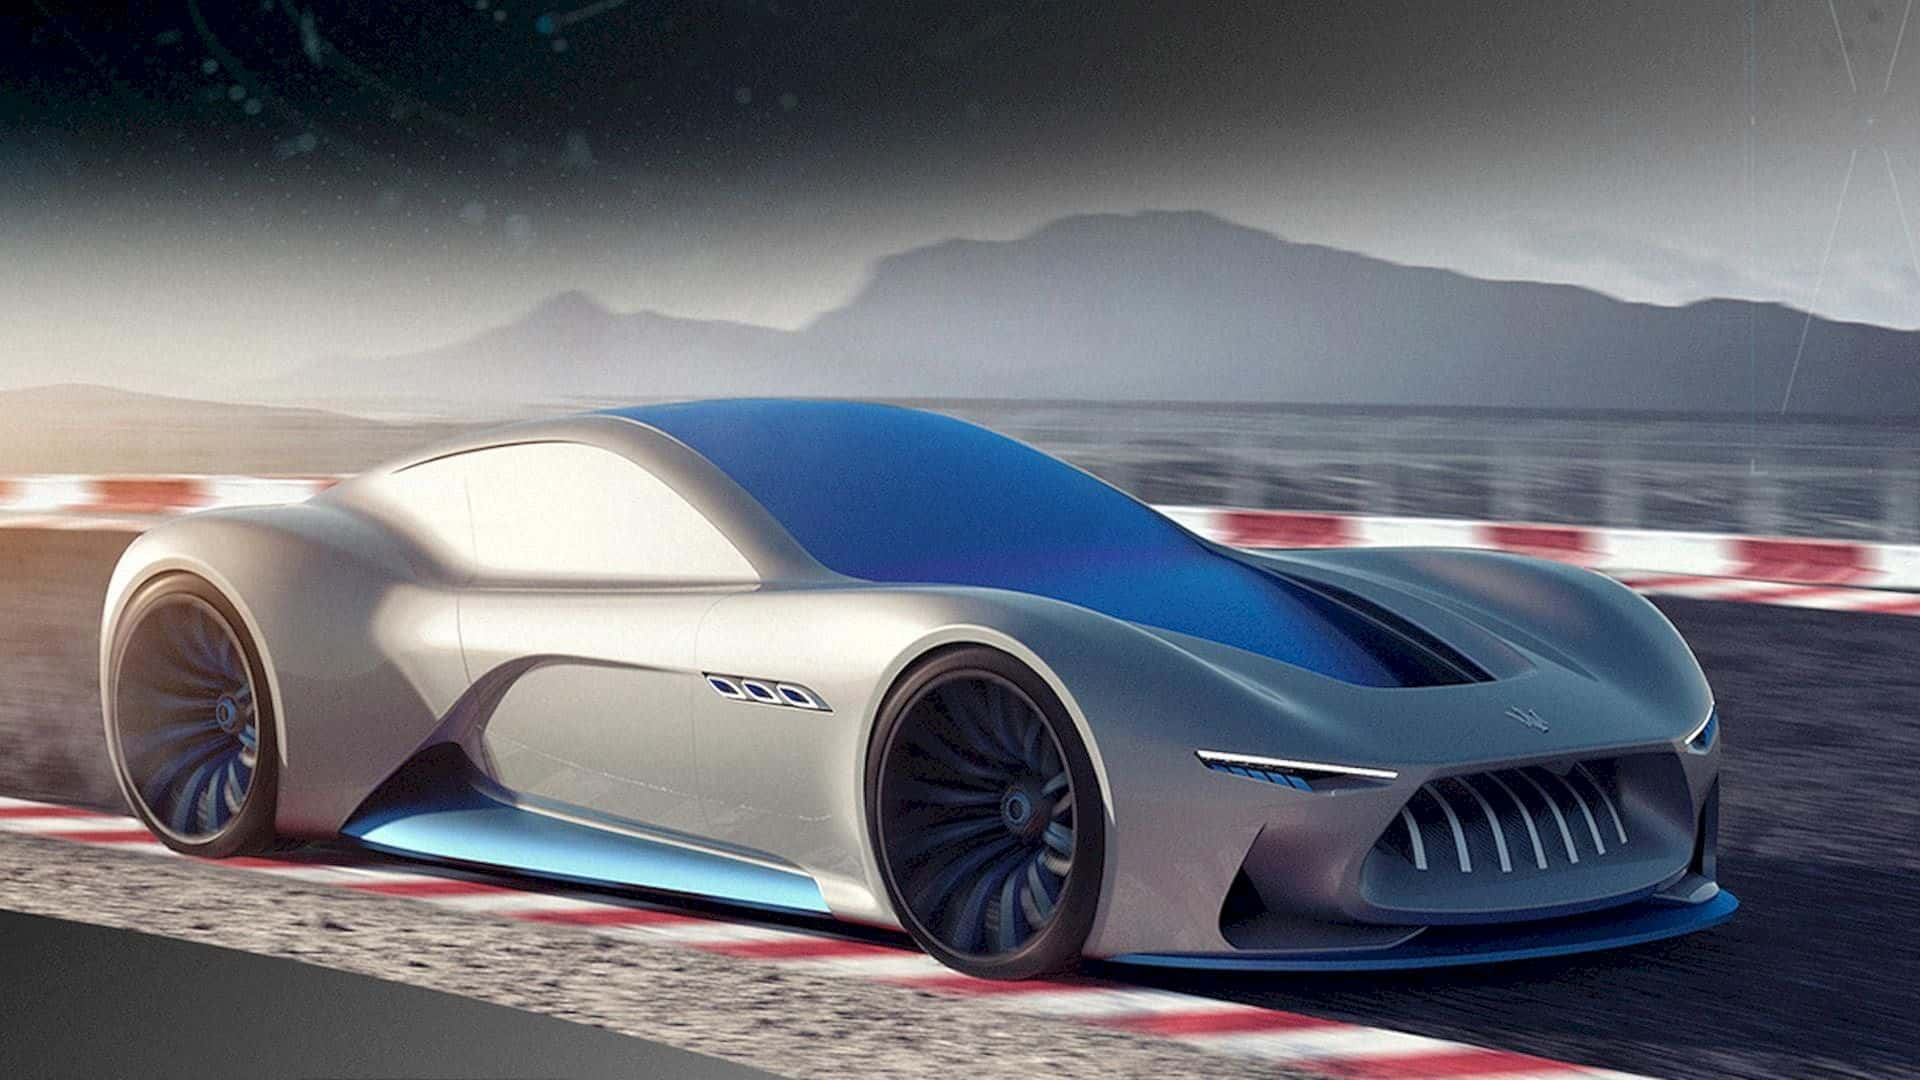 Yet Another Fabulous Concept Car